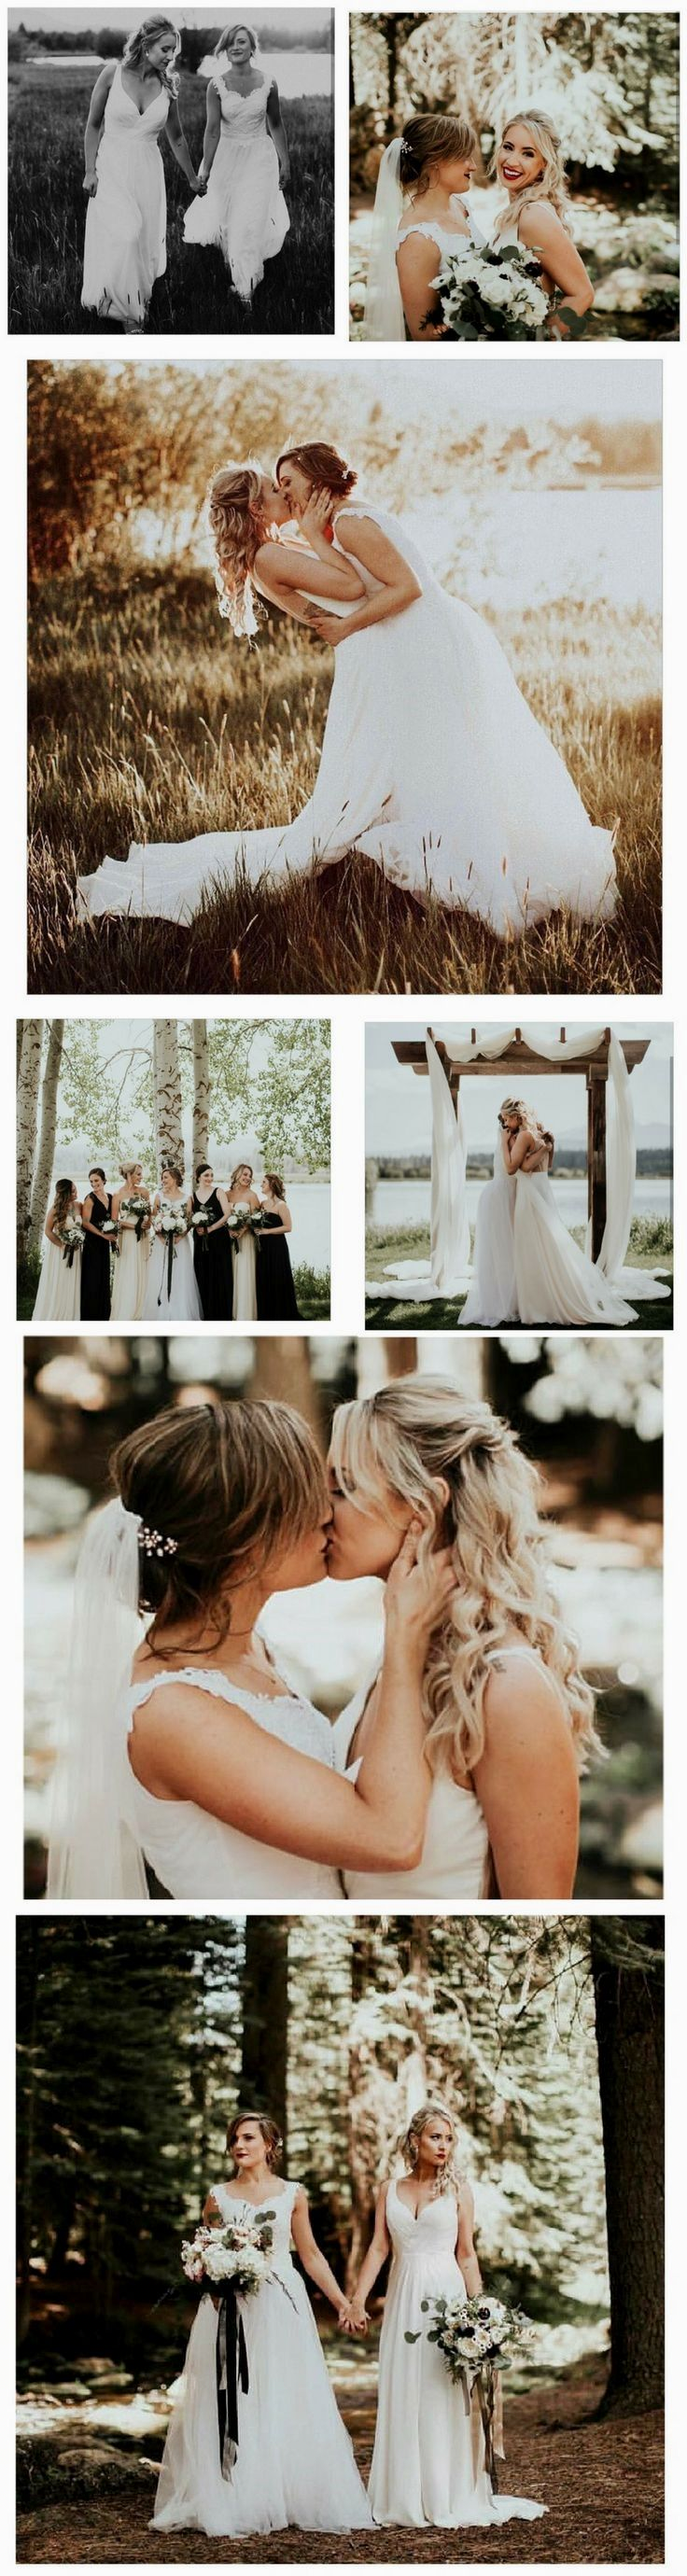 1859 Best Same Sex Weddings Images On Pinterest Weddings Lesbian